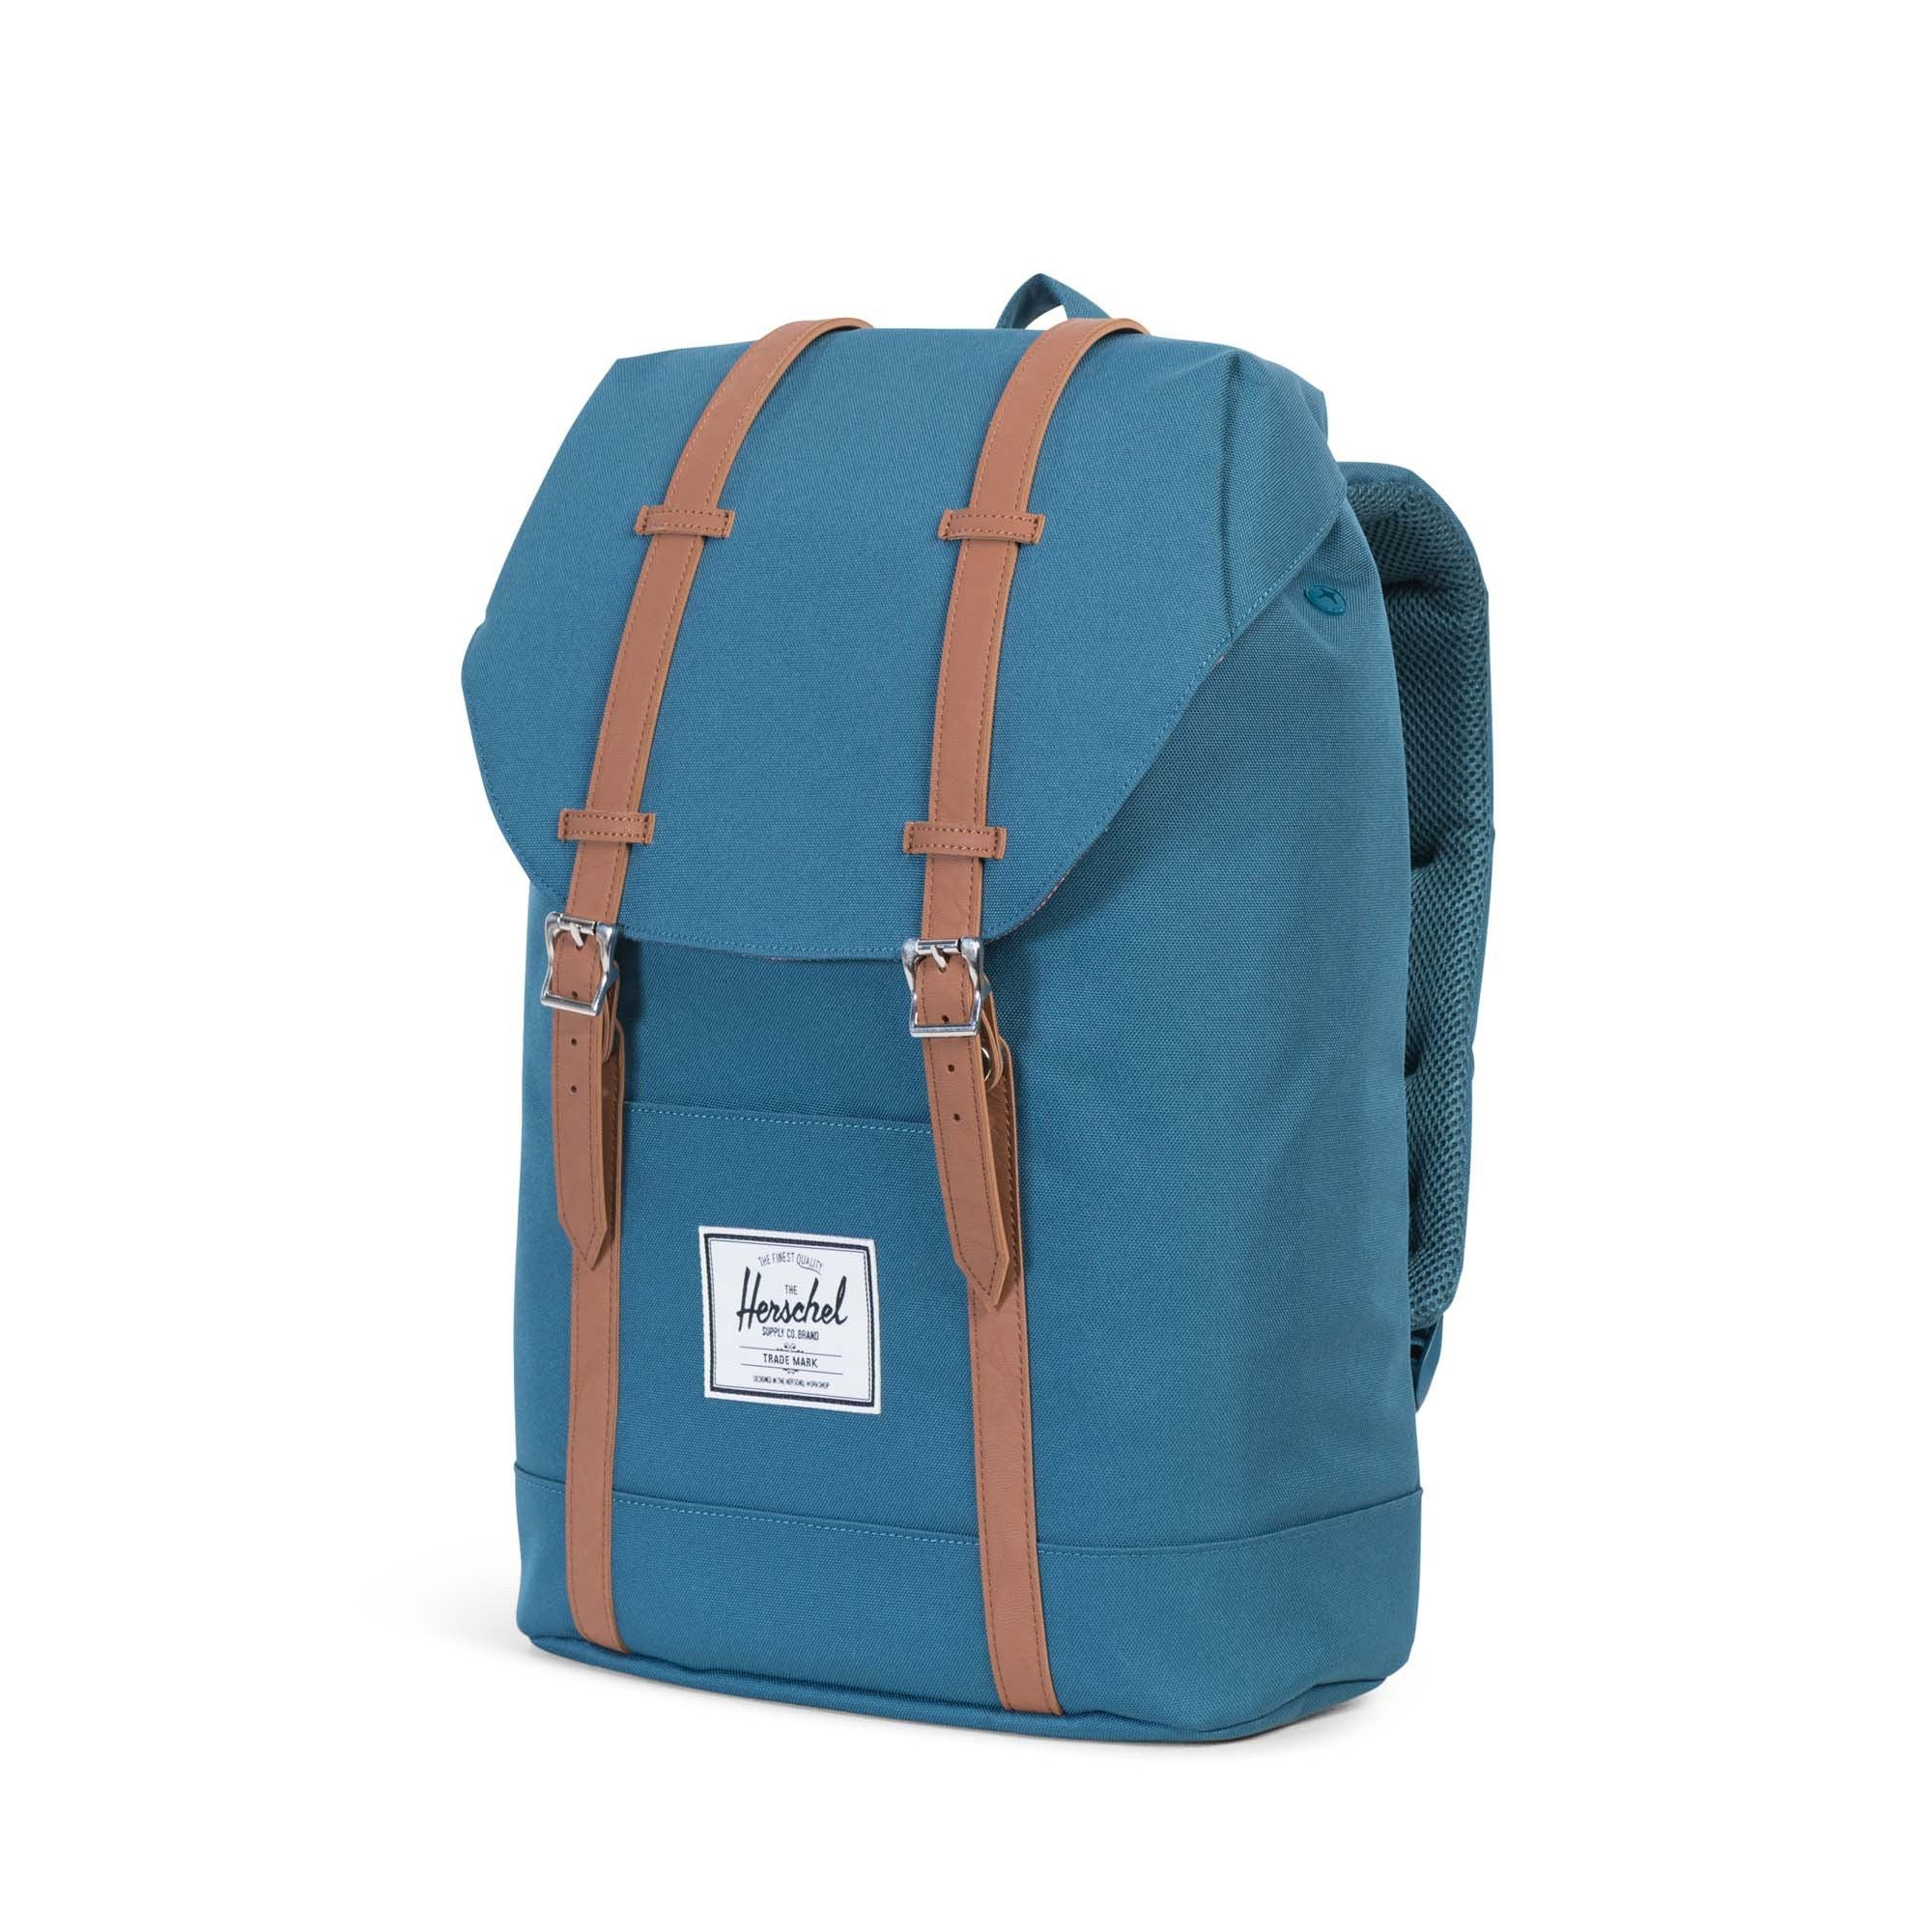 Herschel Supply Co. - Retreat Backpack, Indian Teal - The Giant Peach - 3